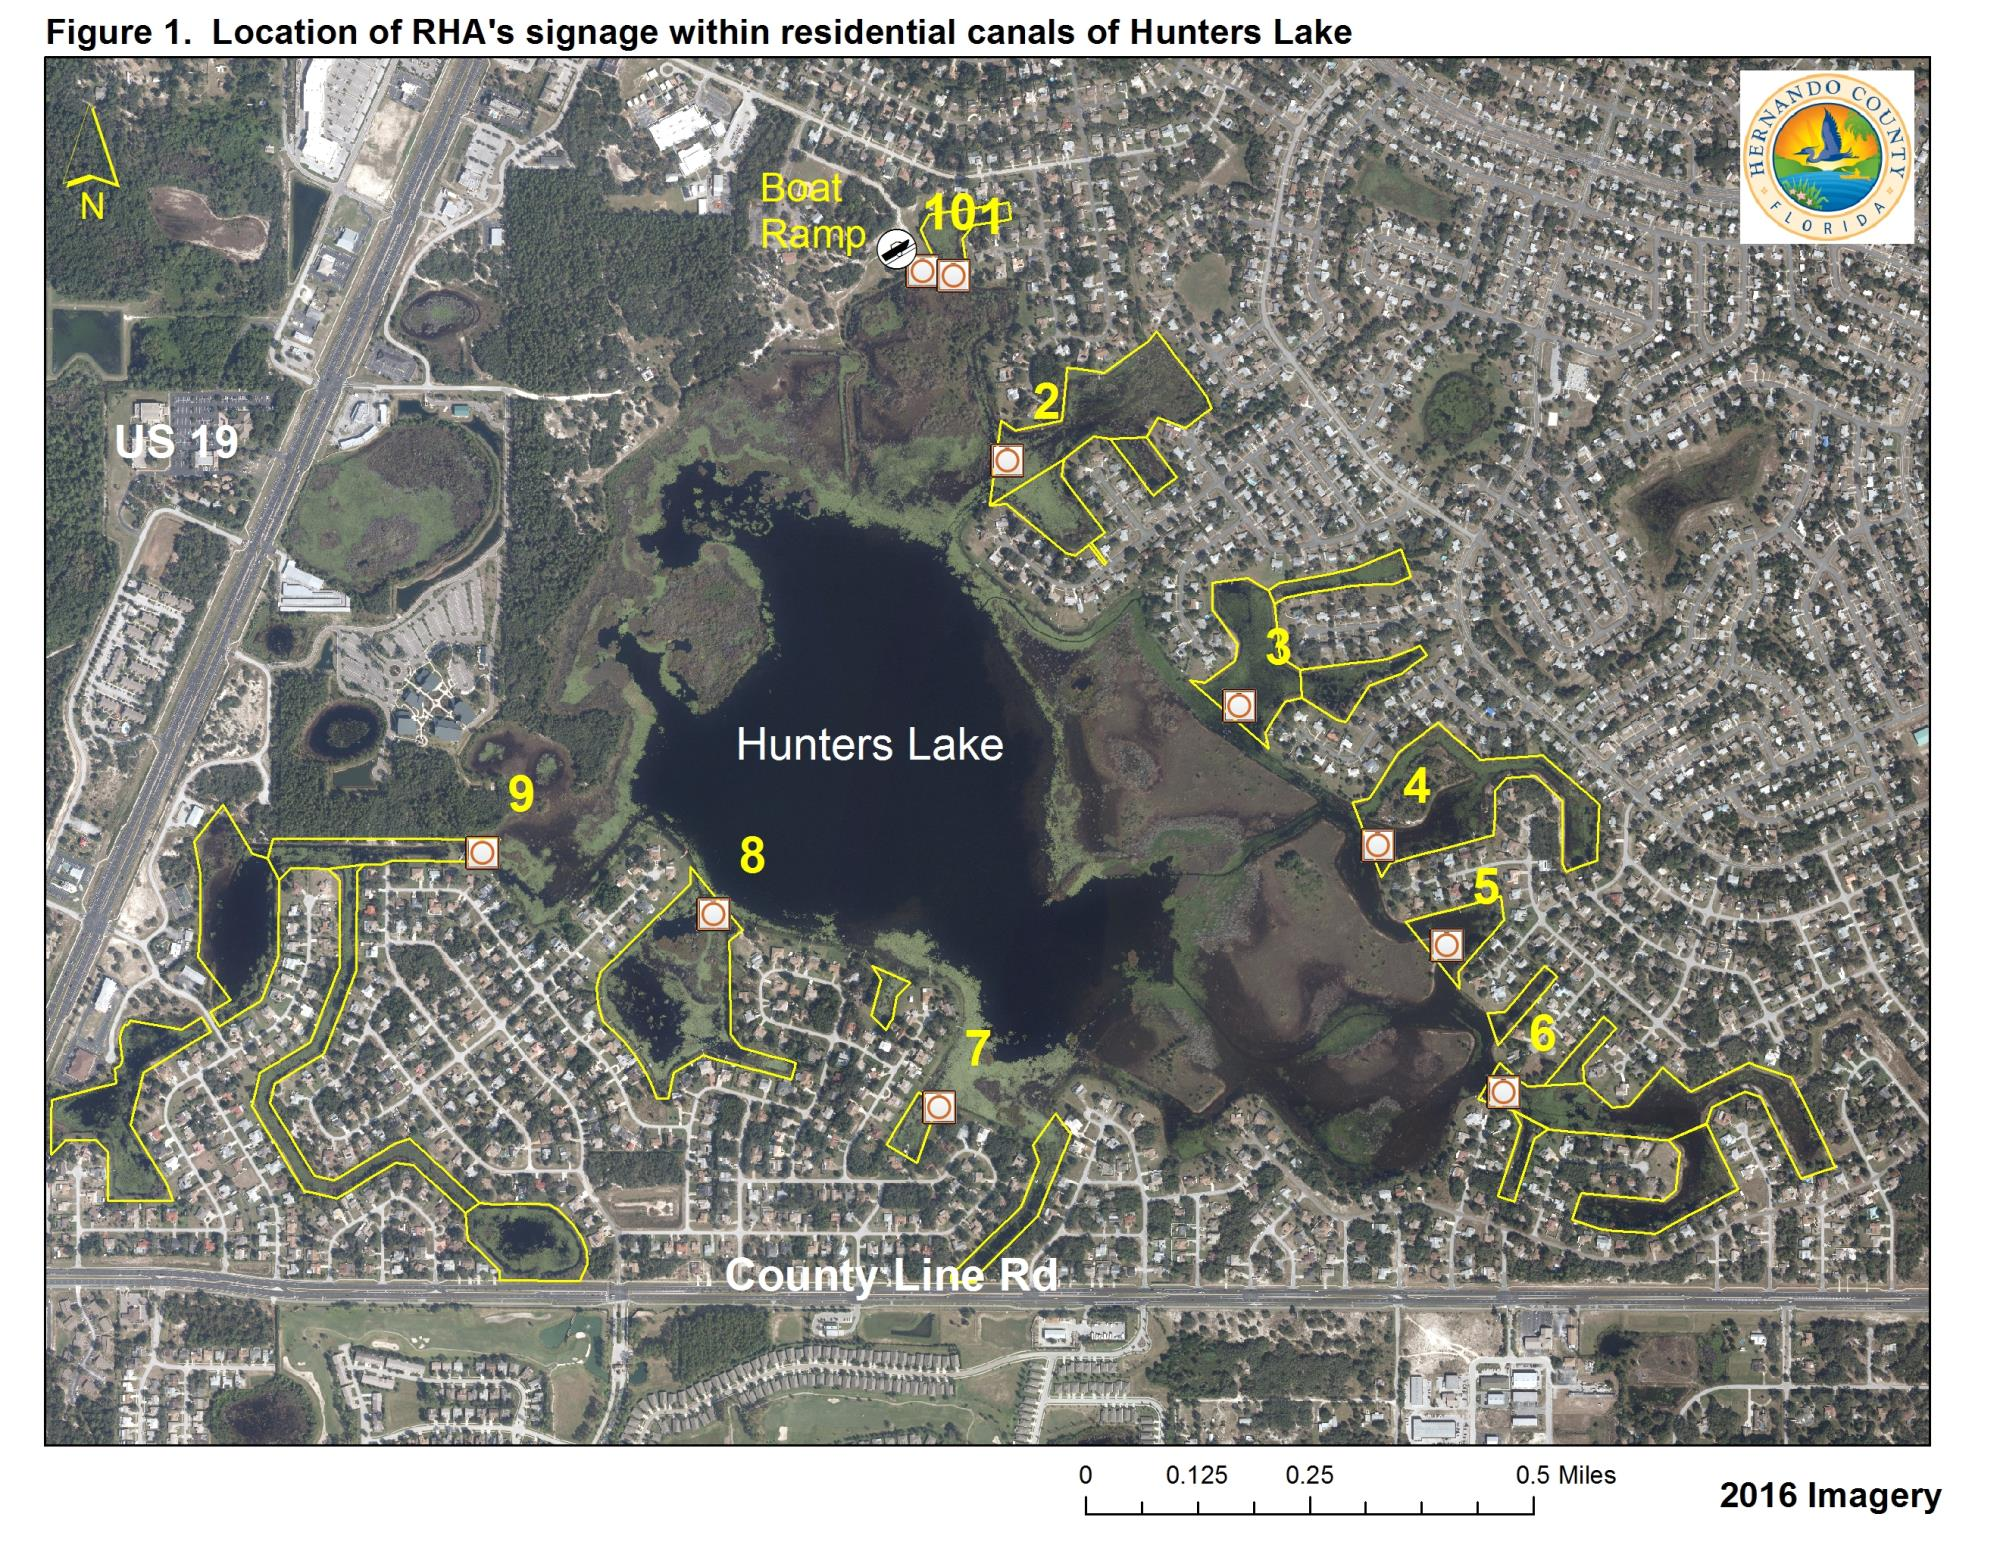 Map of Locations of Restricted Hunting Area Signage Within Residential Canals of Hunters Lake